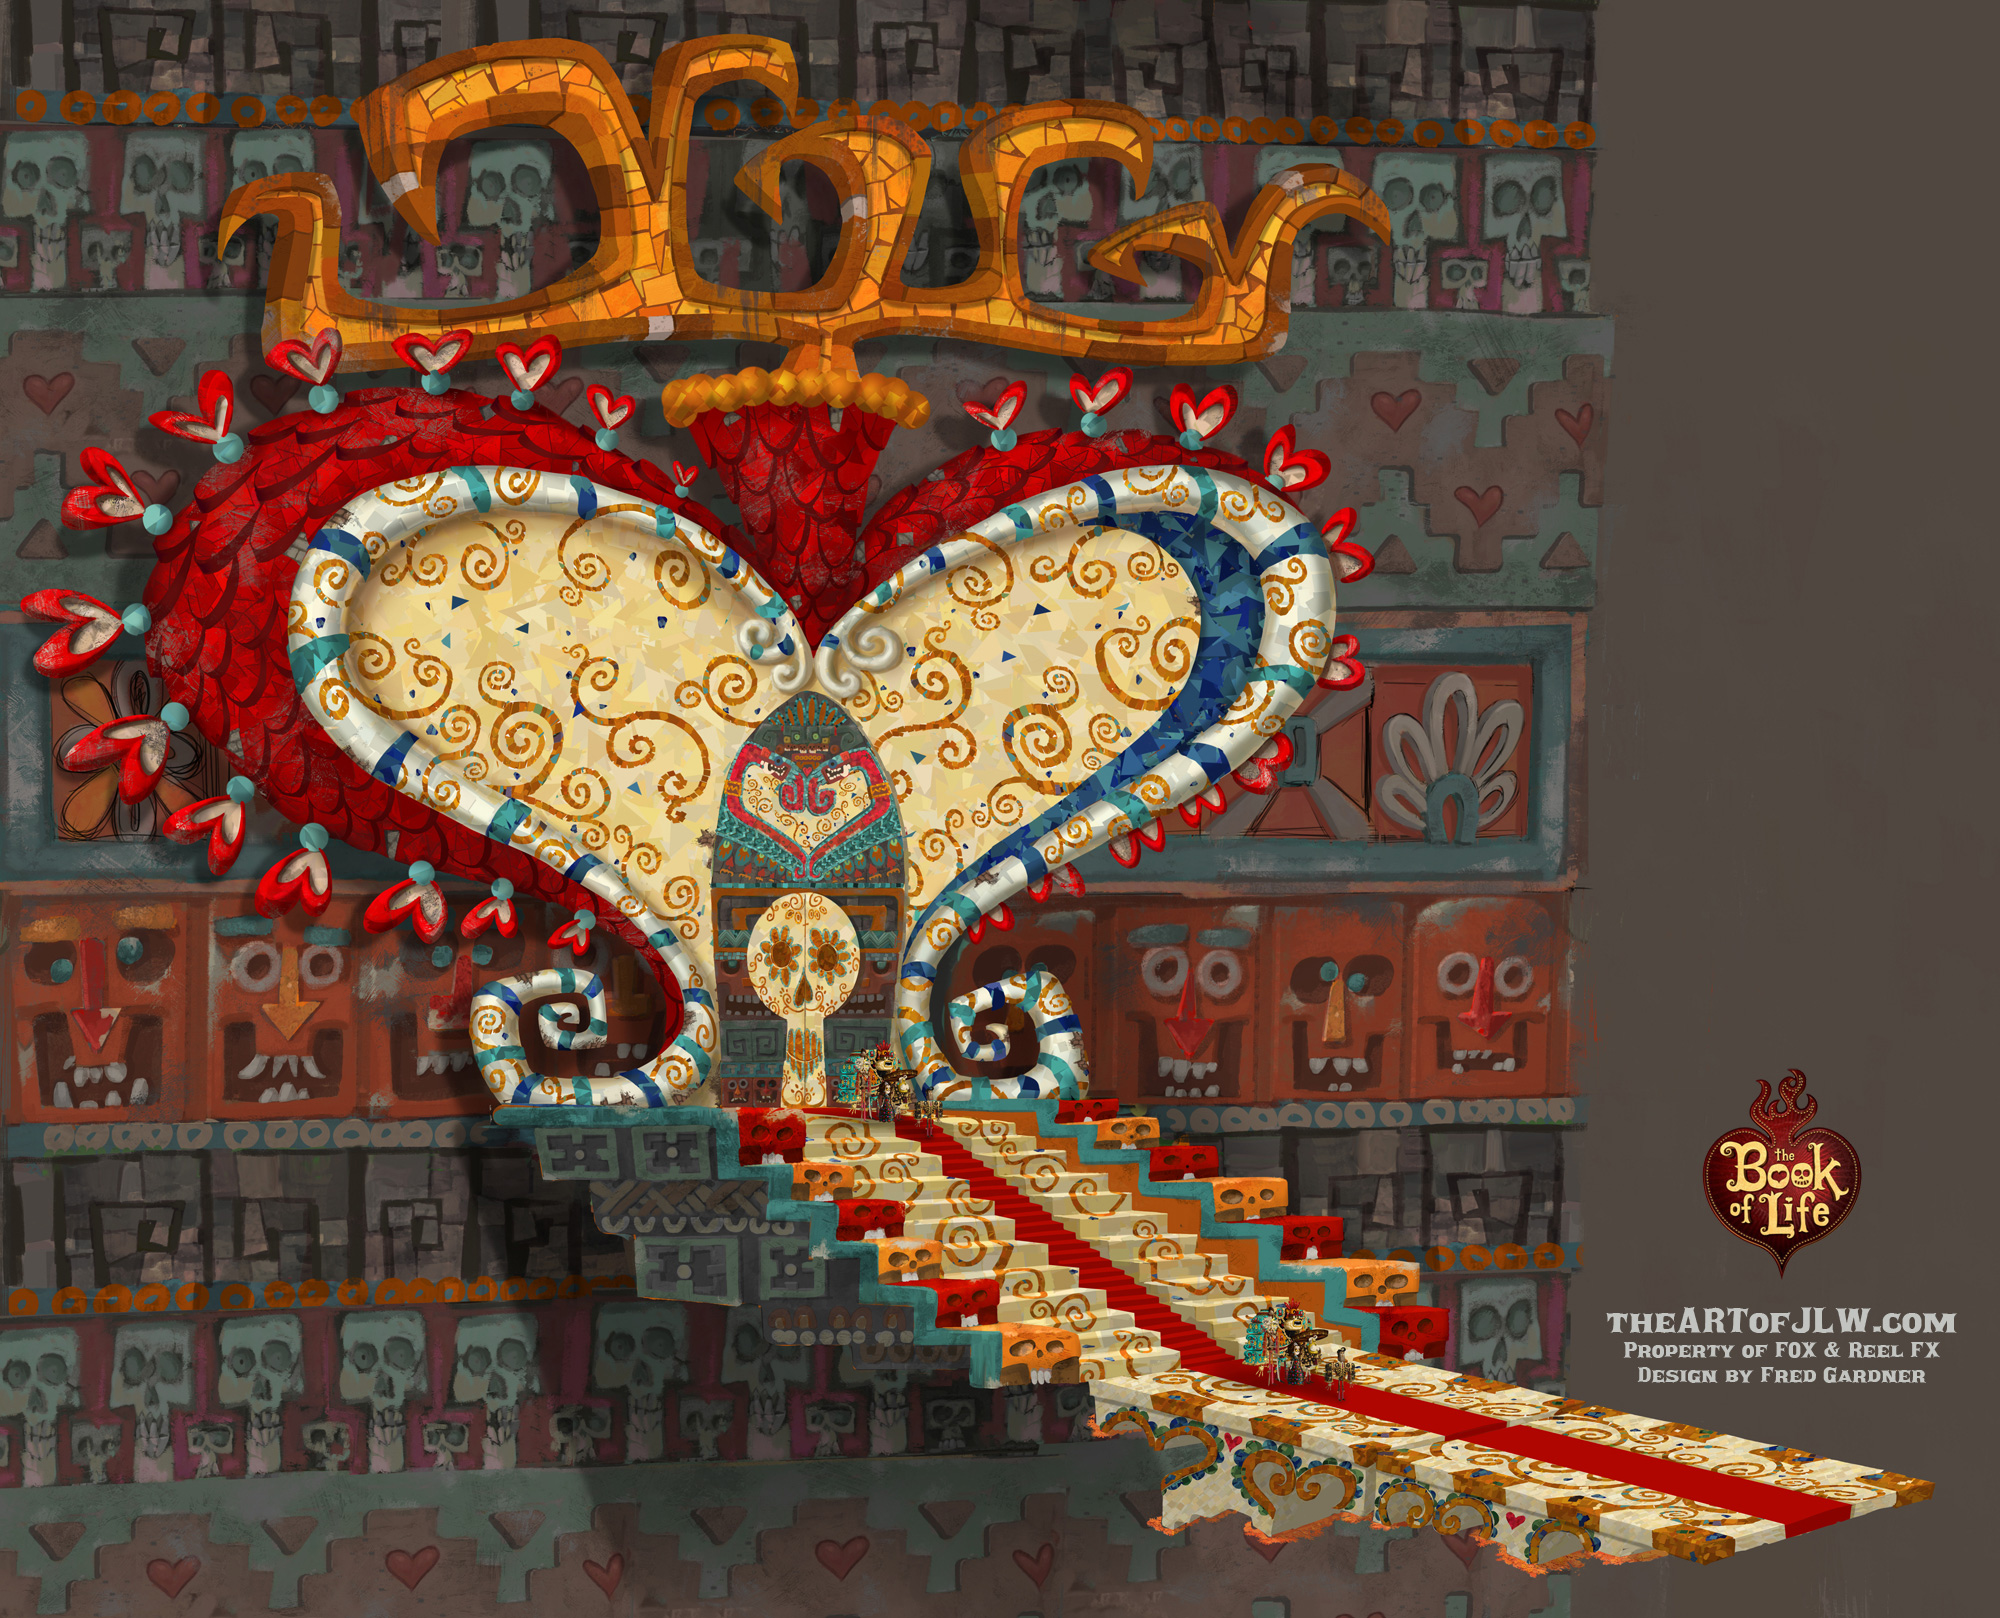 The Book of Life Concept Art by Jordan Lamarre-Wan